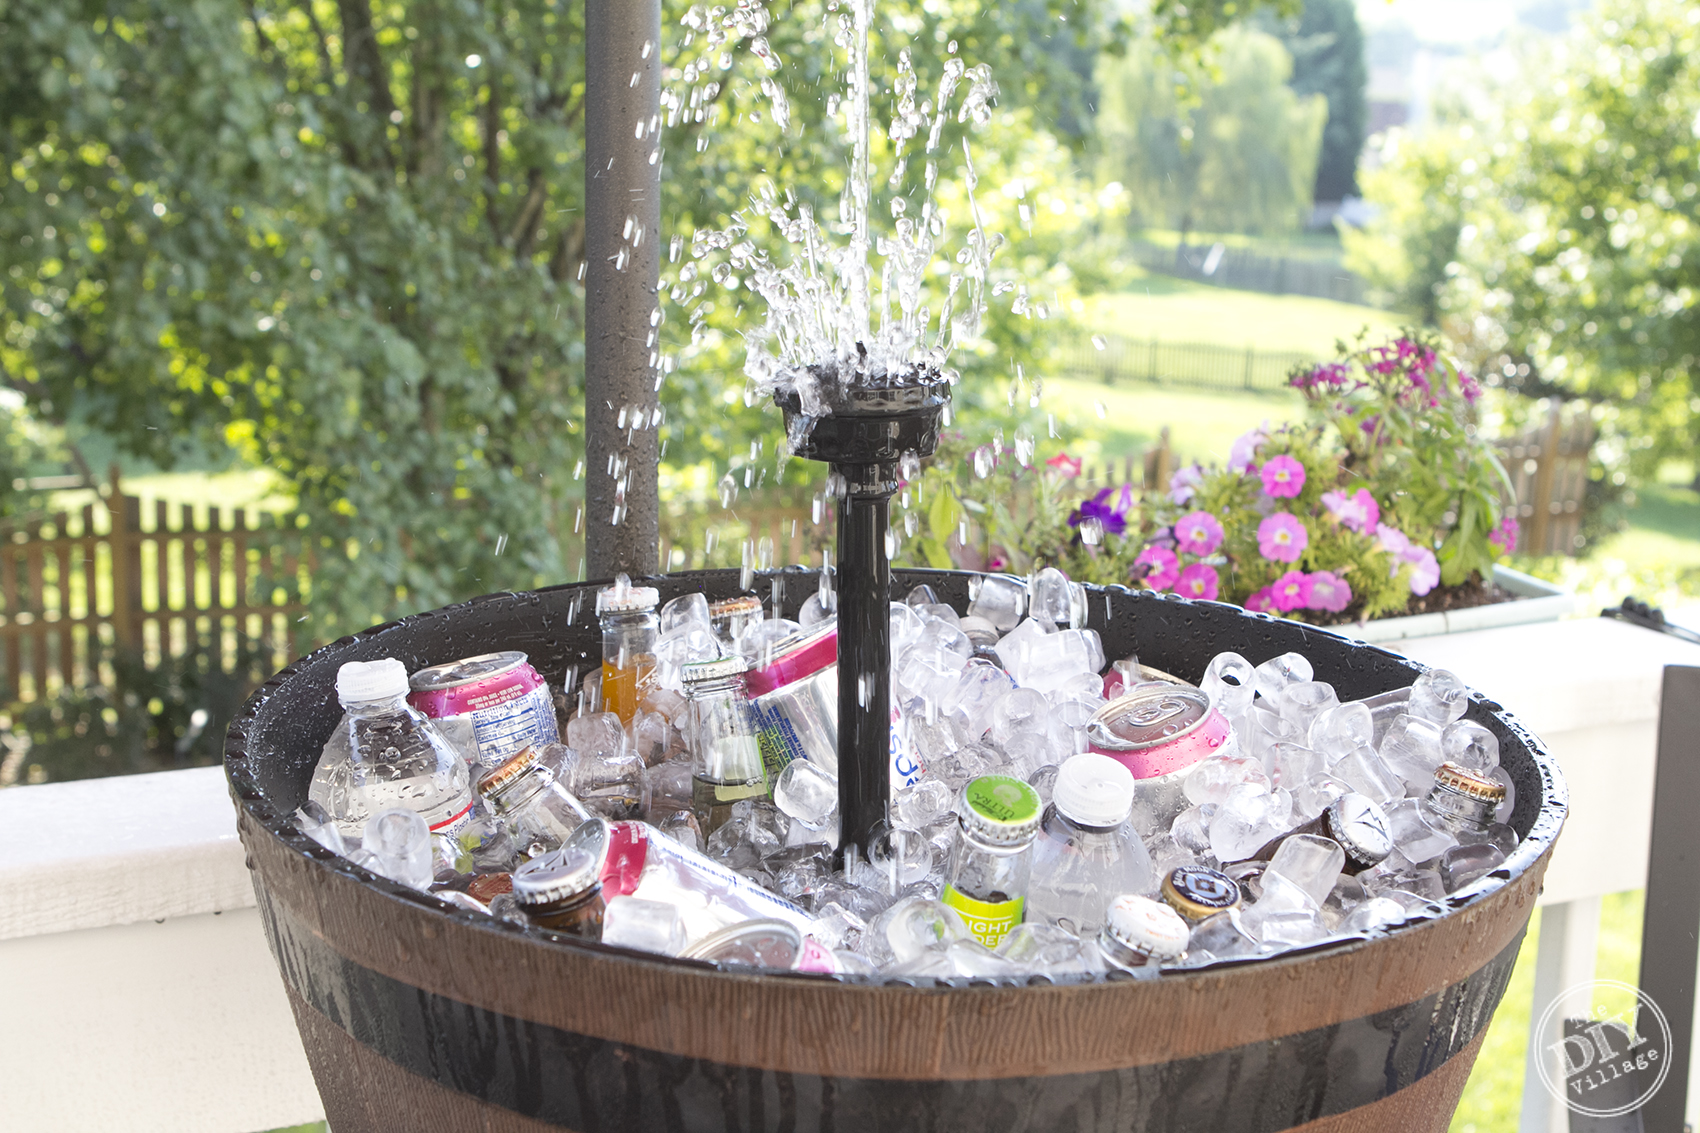 Awesome Iced beverage cooler fountain. This is so cool. I need one of these for our next cookout or summer party! Great way to keep guests drinks cool.